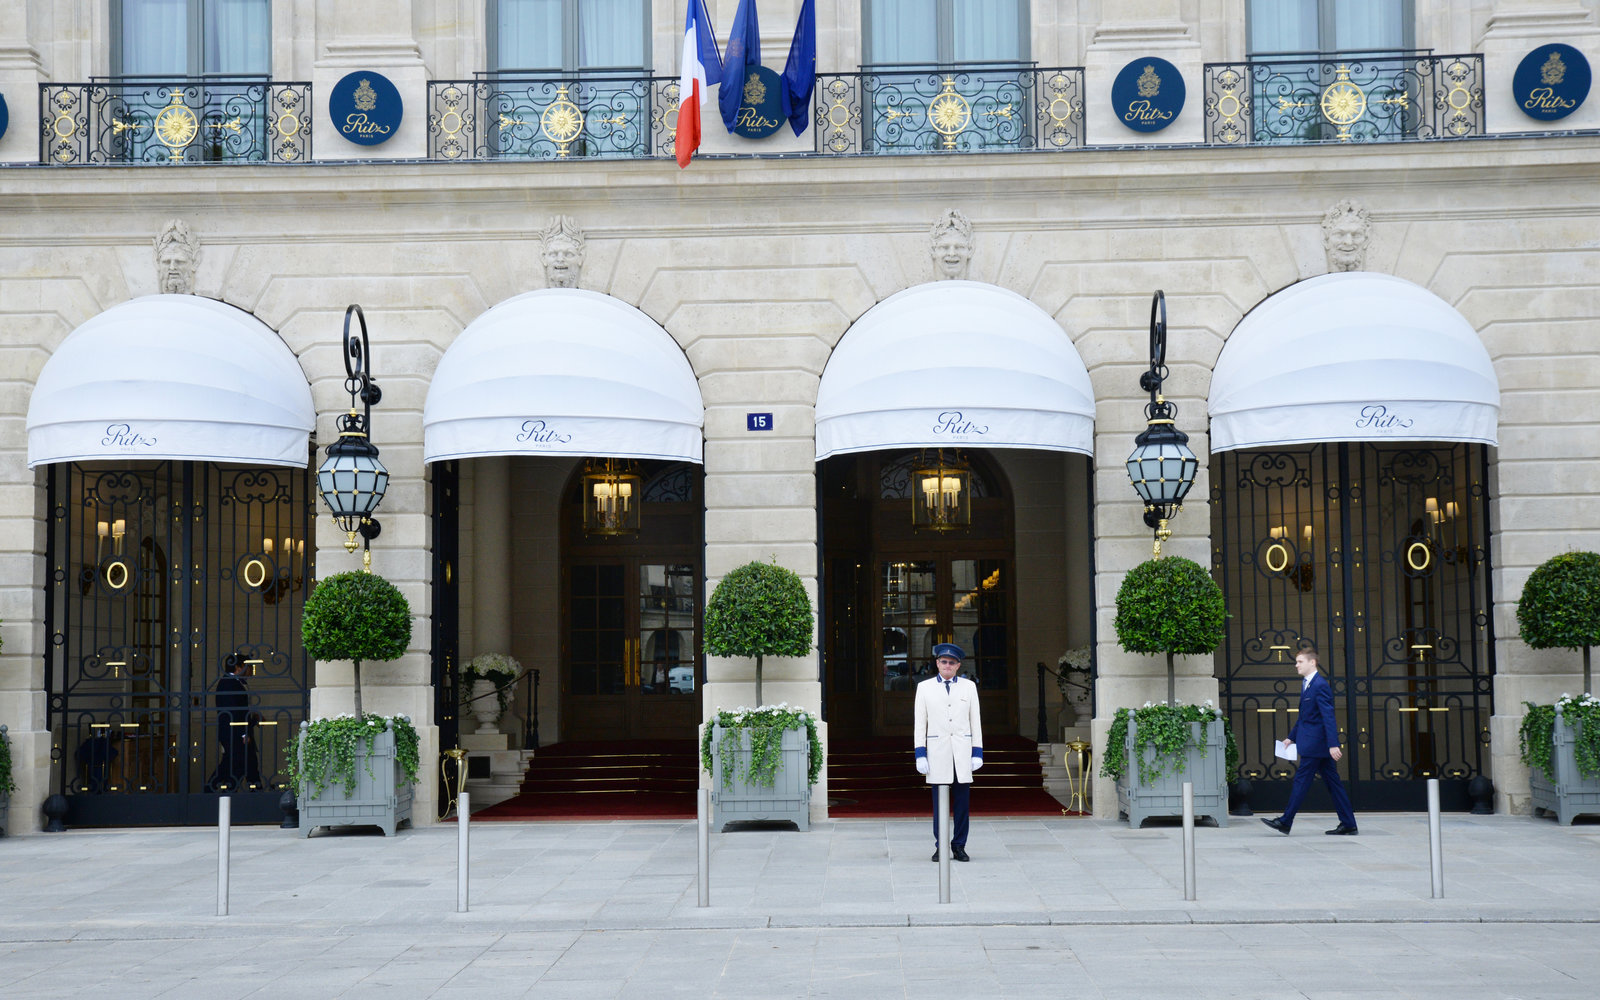 Location Parking Paris 16 Hotel Review The Ritz Reclaims Its Place As Paris S Crown Jewel